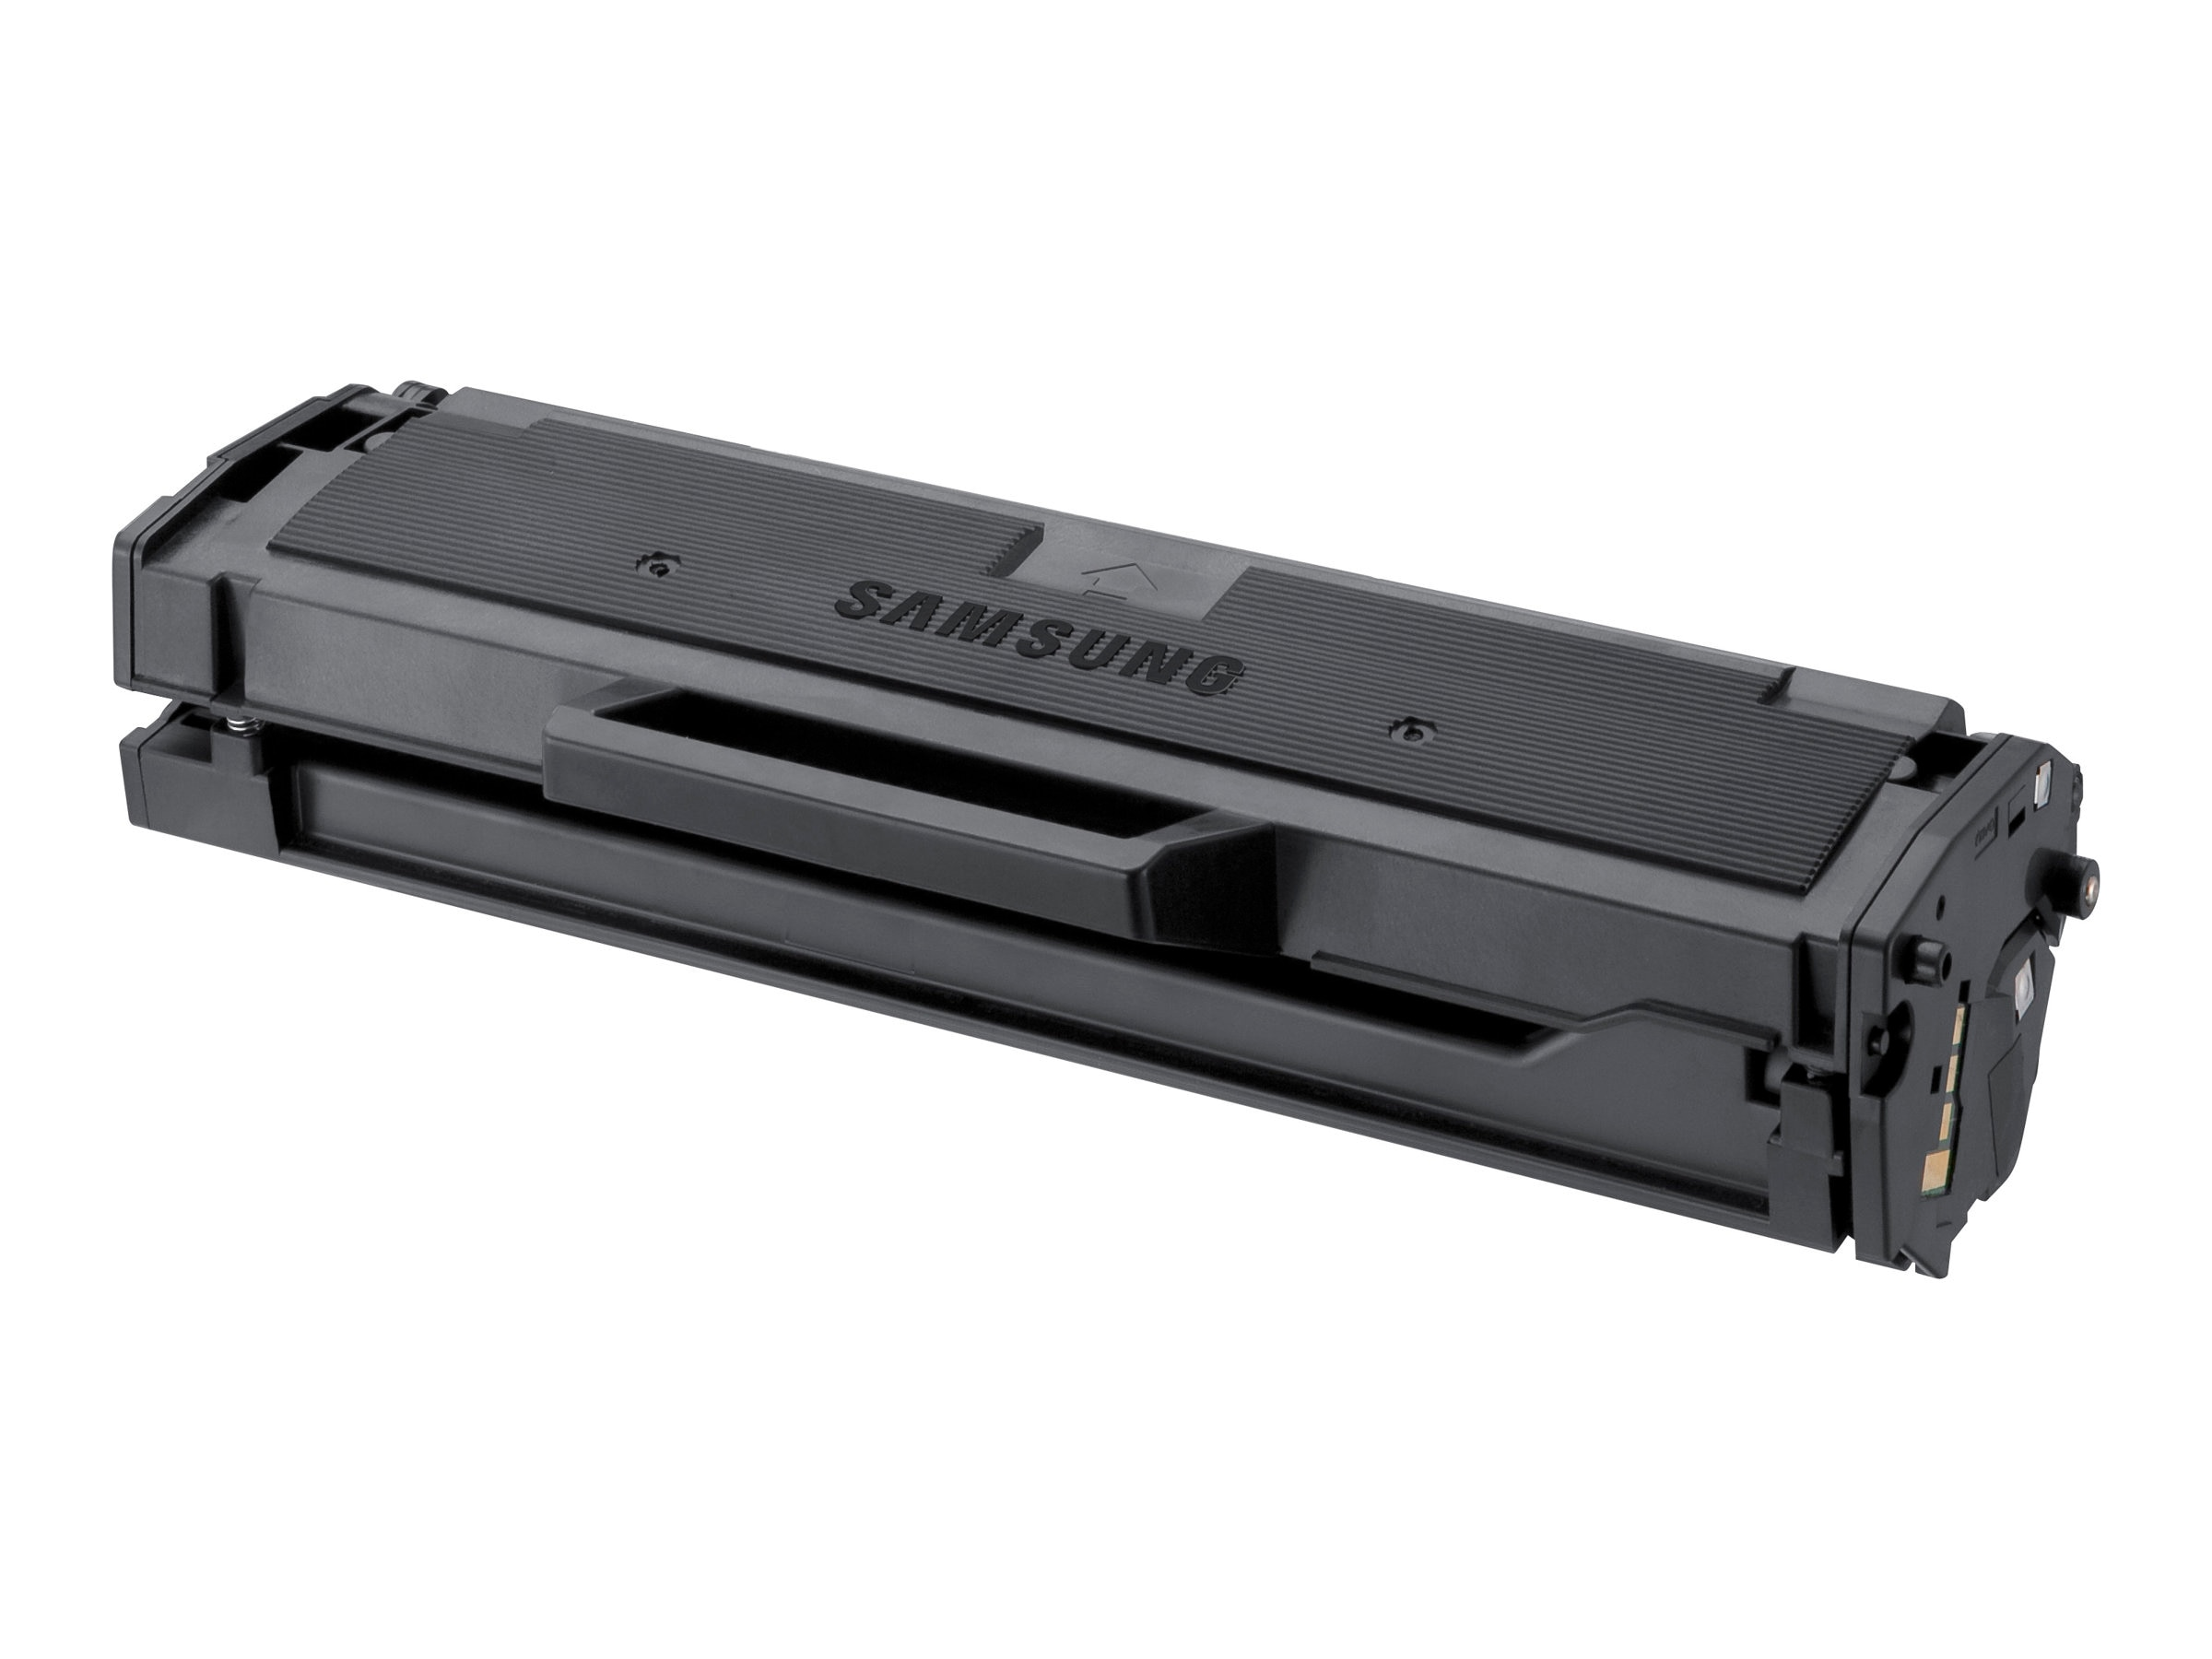 Samsung Black Toner Cartridge for ML-2165W, SCX-3405FW & SF-760P, MLT-D101S